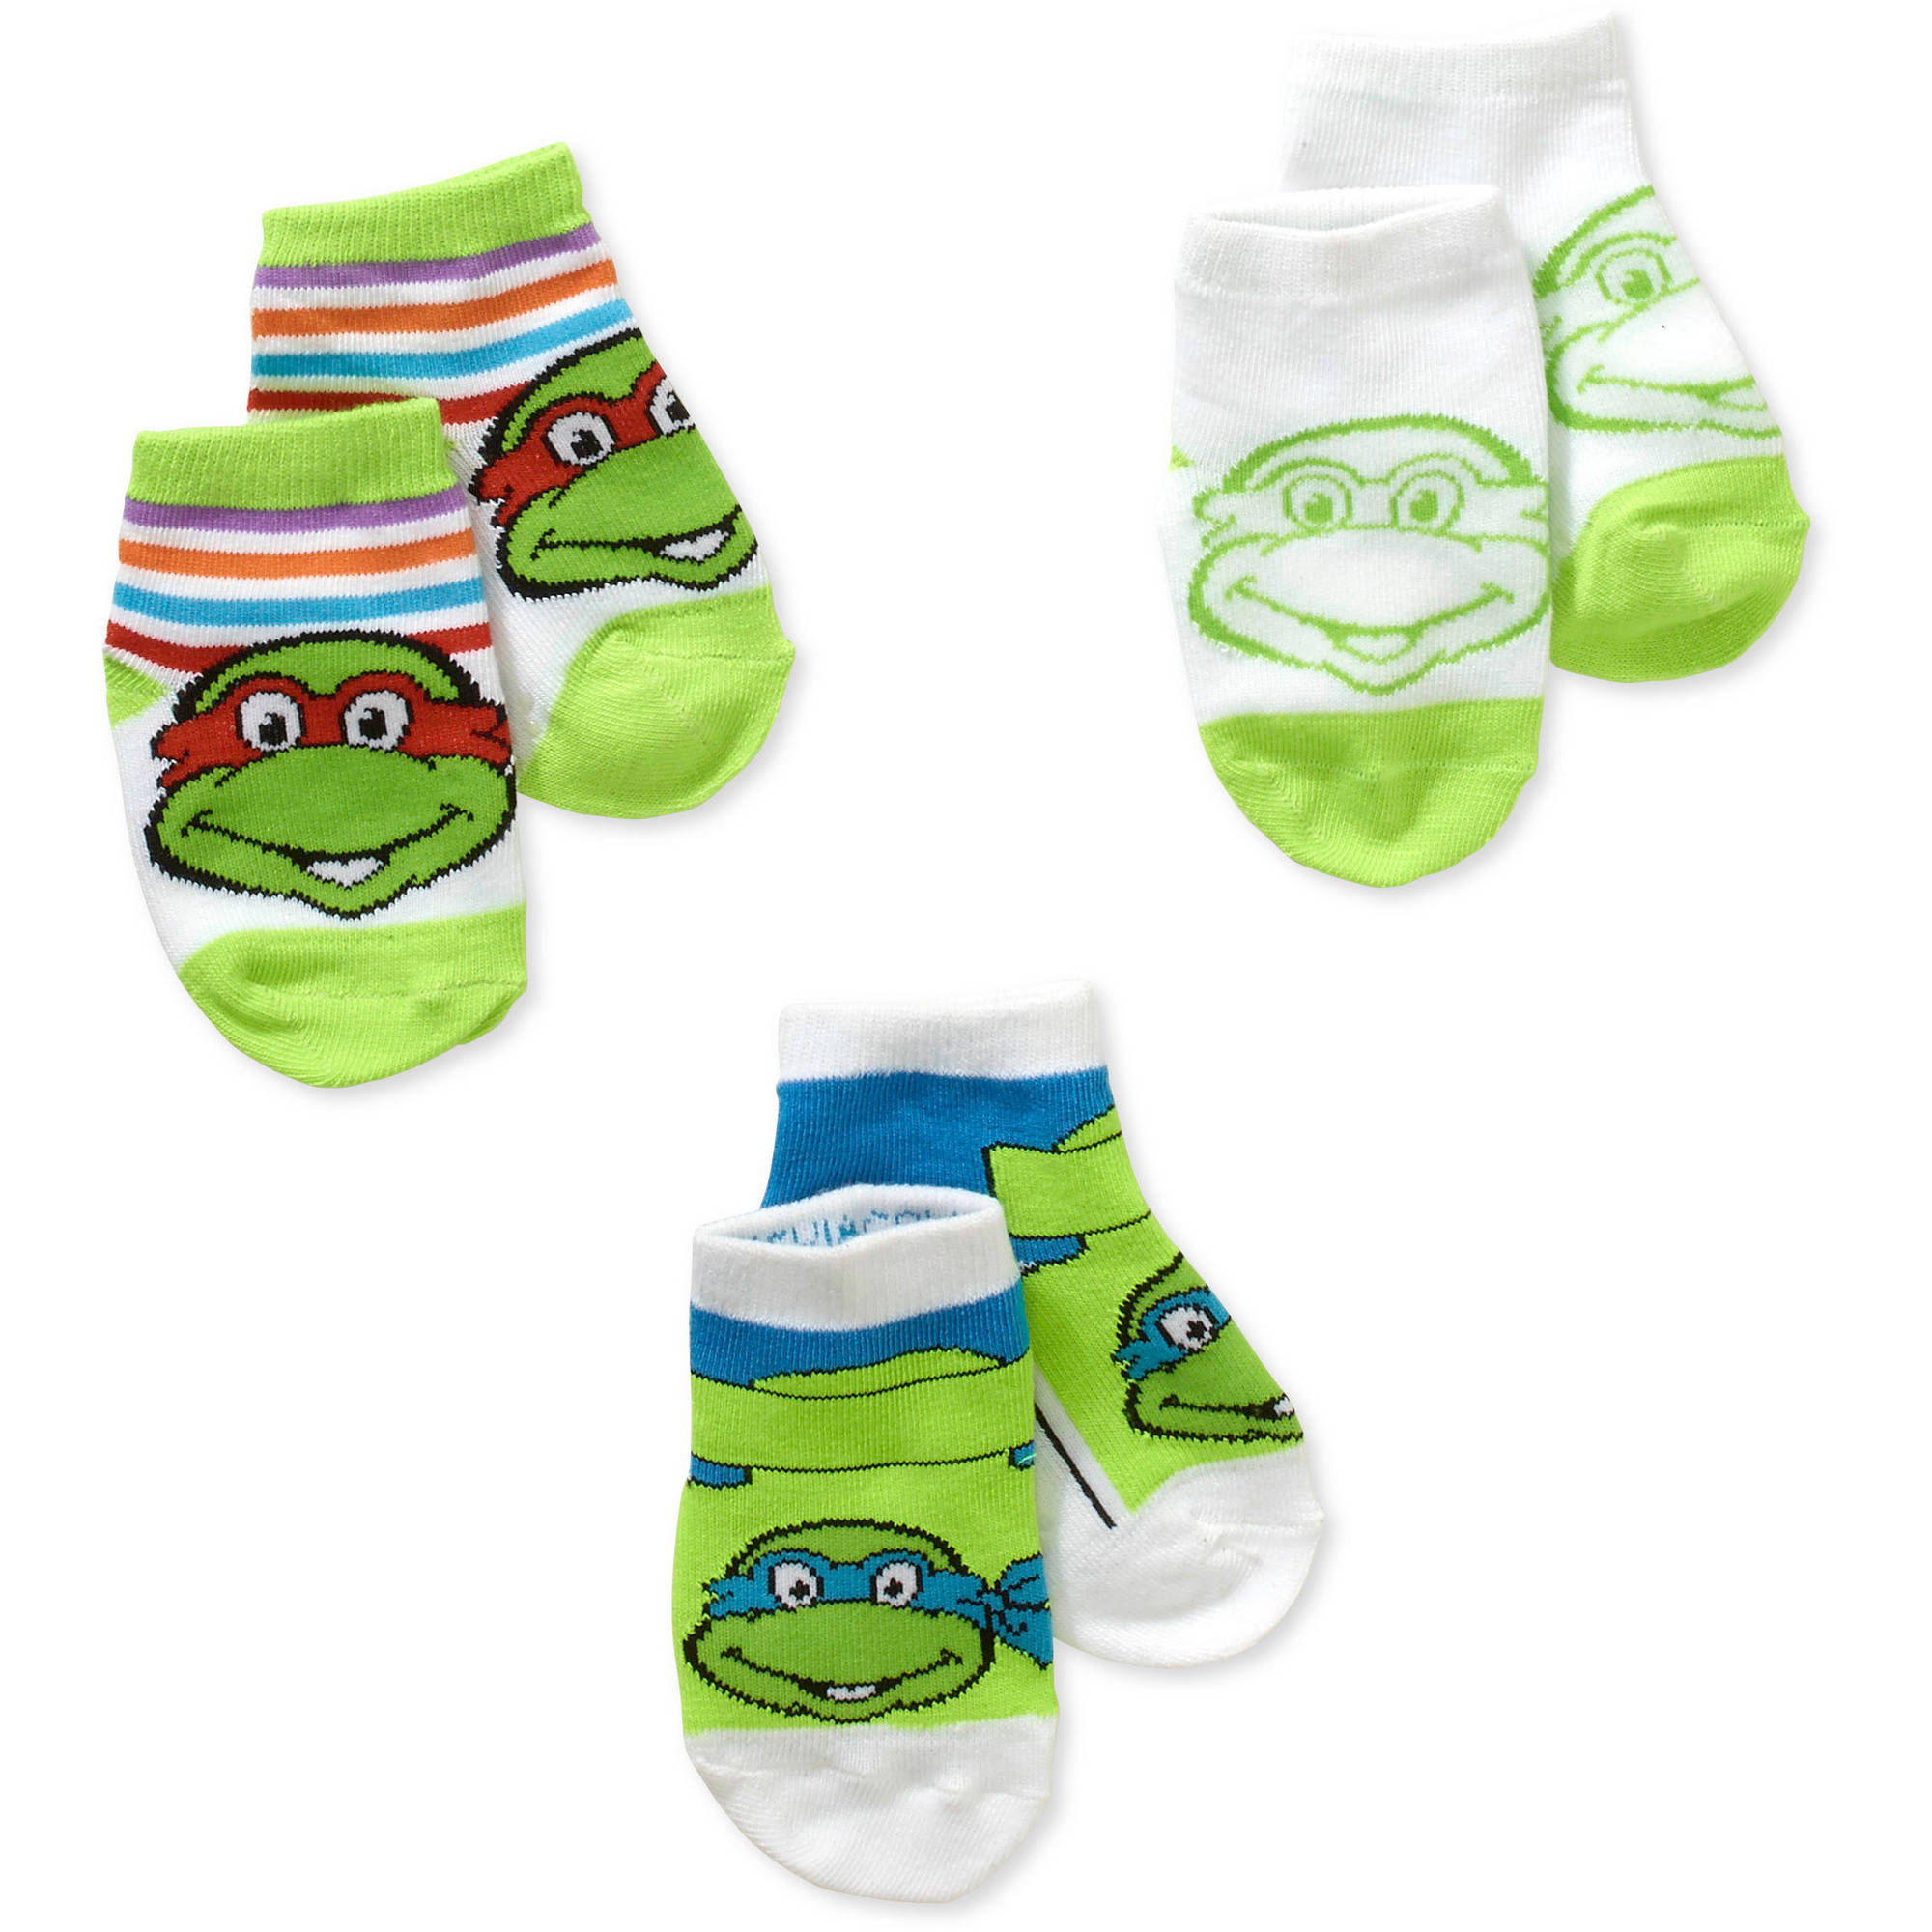 Teenage Mutant Ninja Turtles Newborn Baby Boy Quarter Socks - 3 Pack